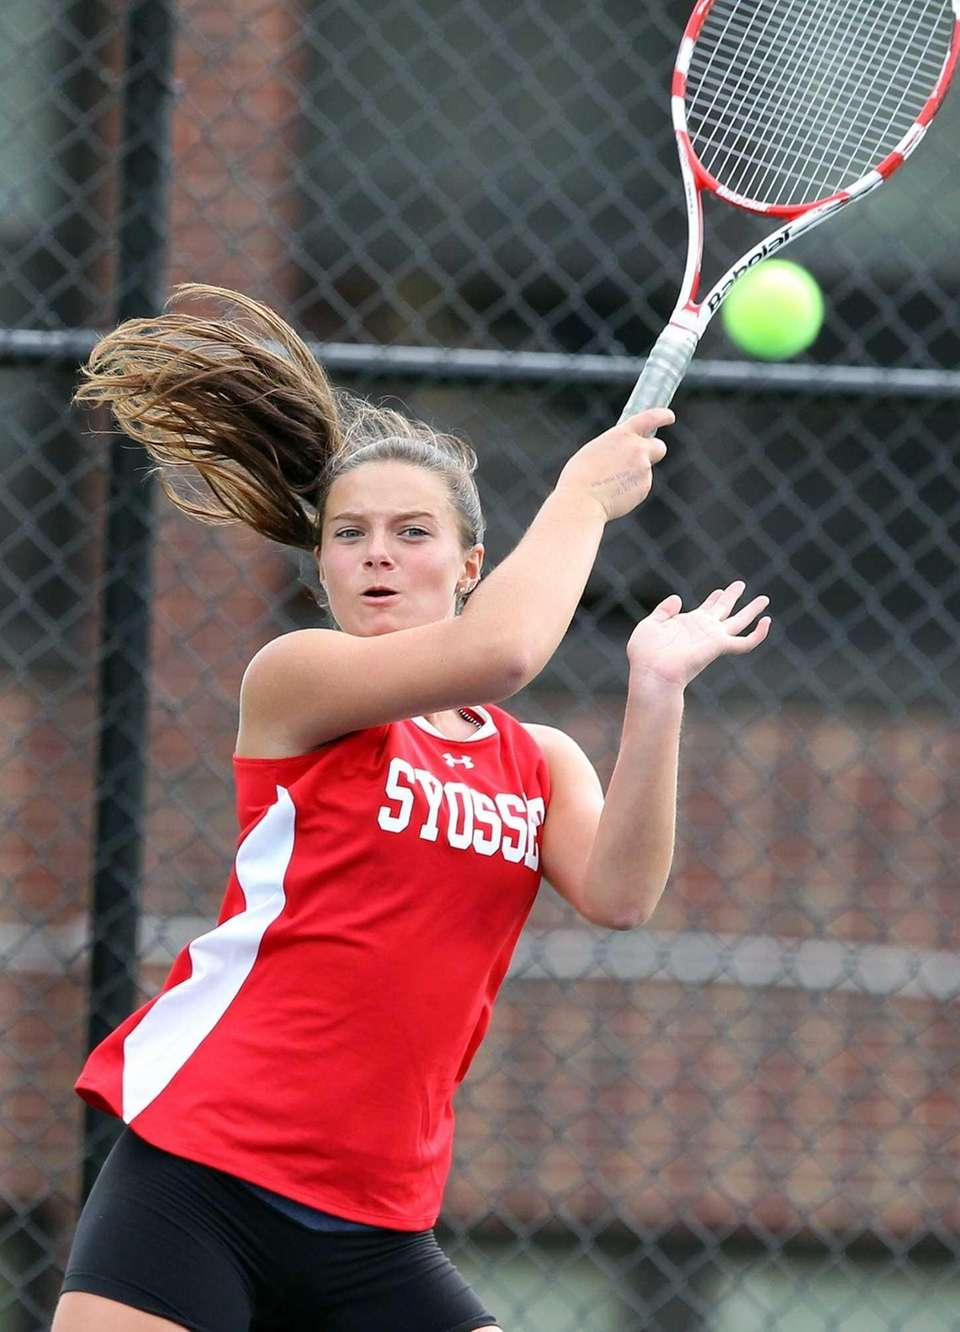 Syosset's Katie Cirella in match against Roslyn's Marissa